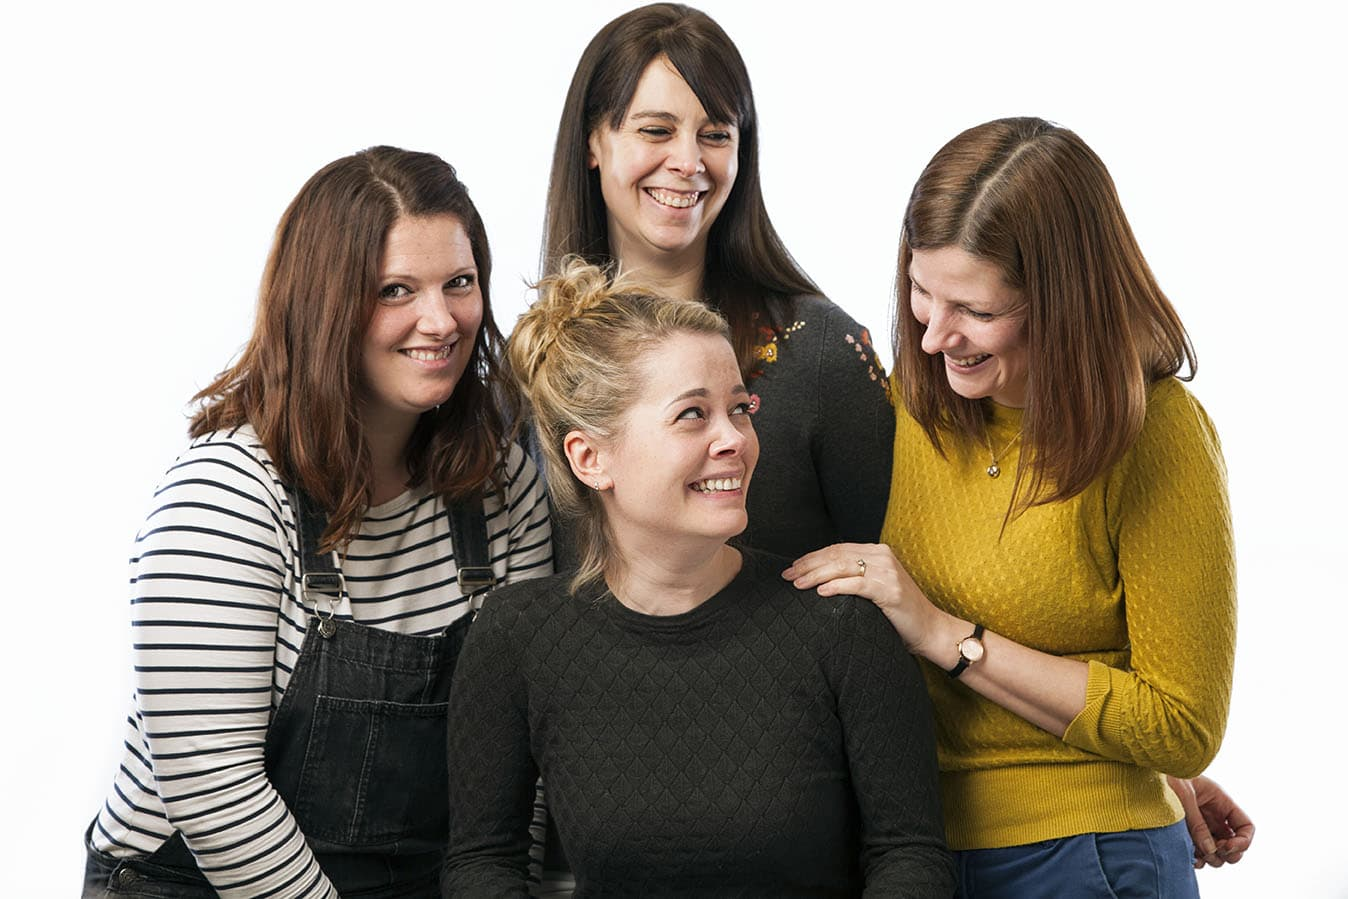 Four sisters laughing as they pose for family portrait in a studio with a white background